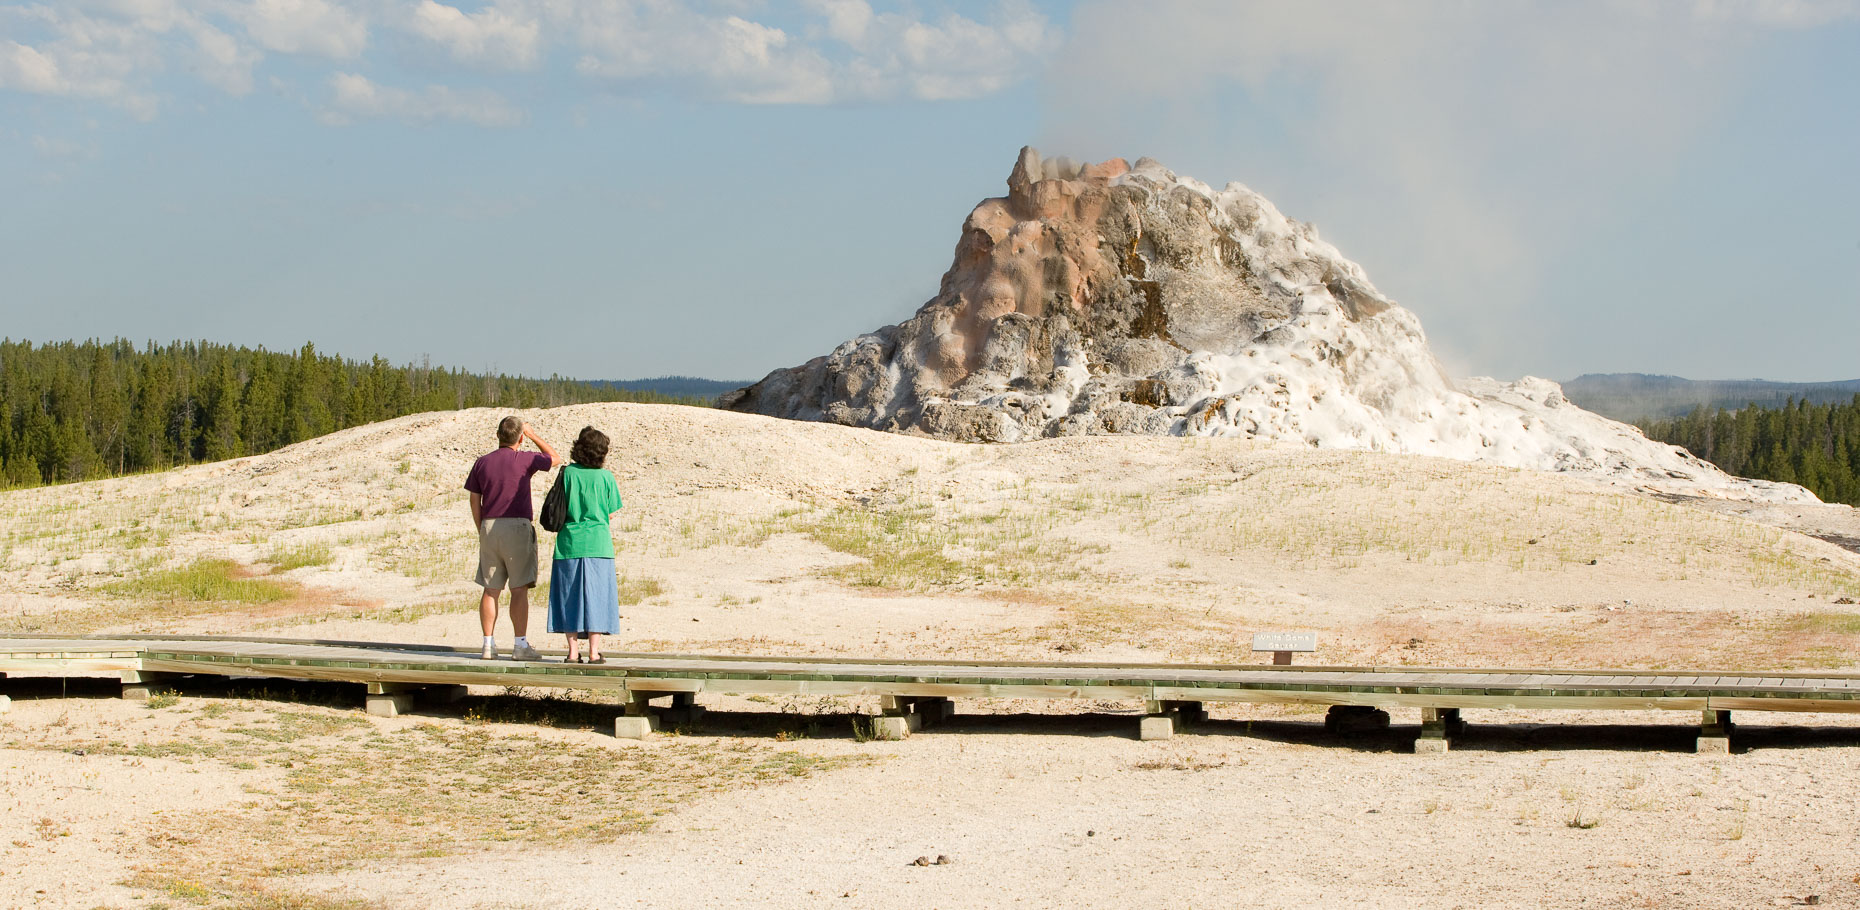 Man and woman standing on boardwalk waiting for geological geyser to erupt in Yellowstone National Park by David Zaitz